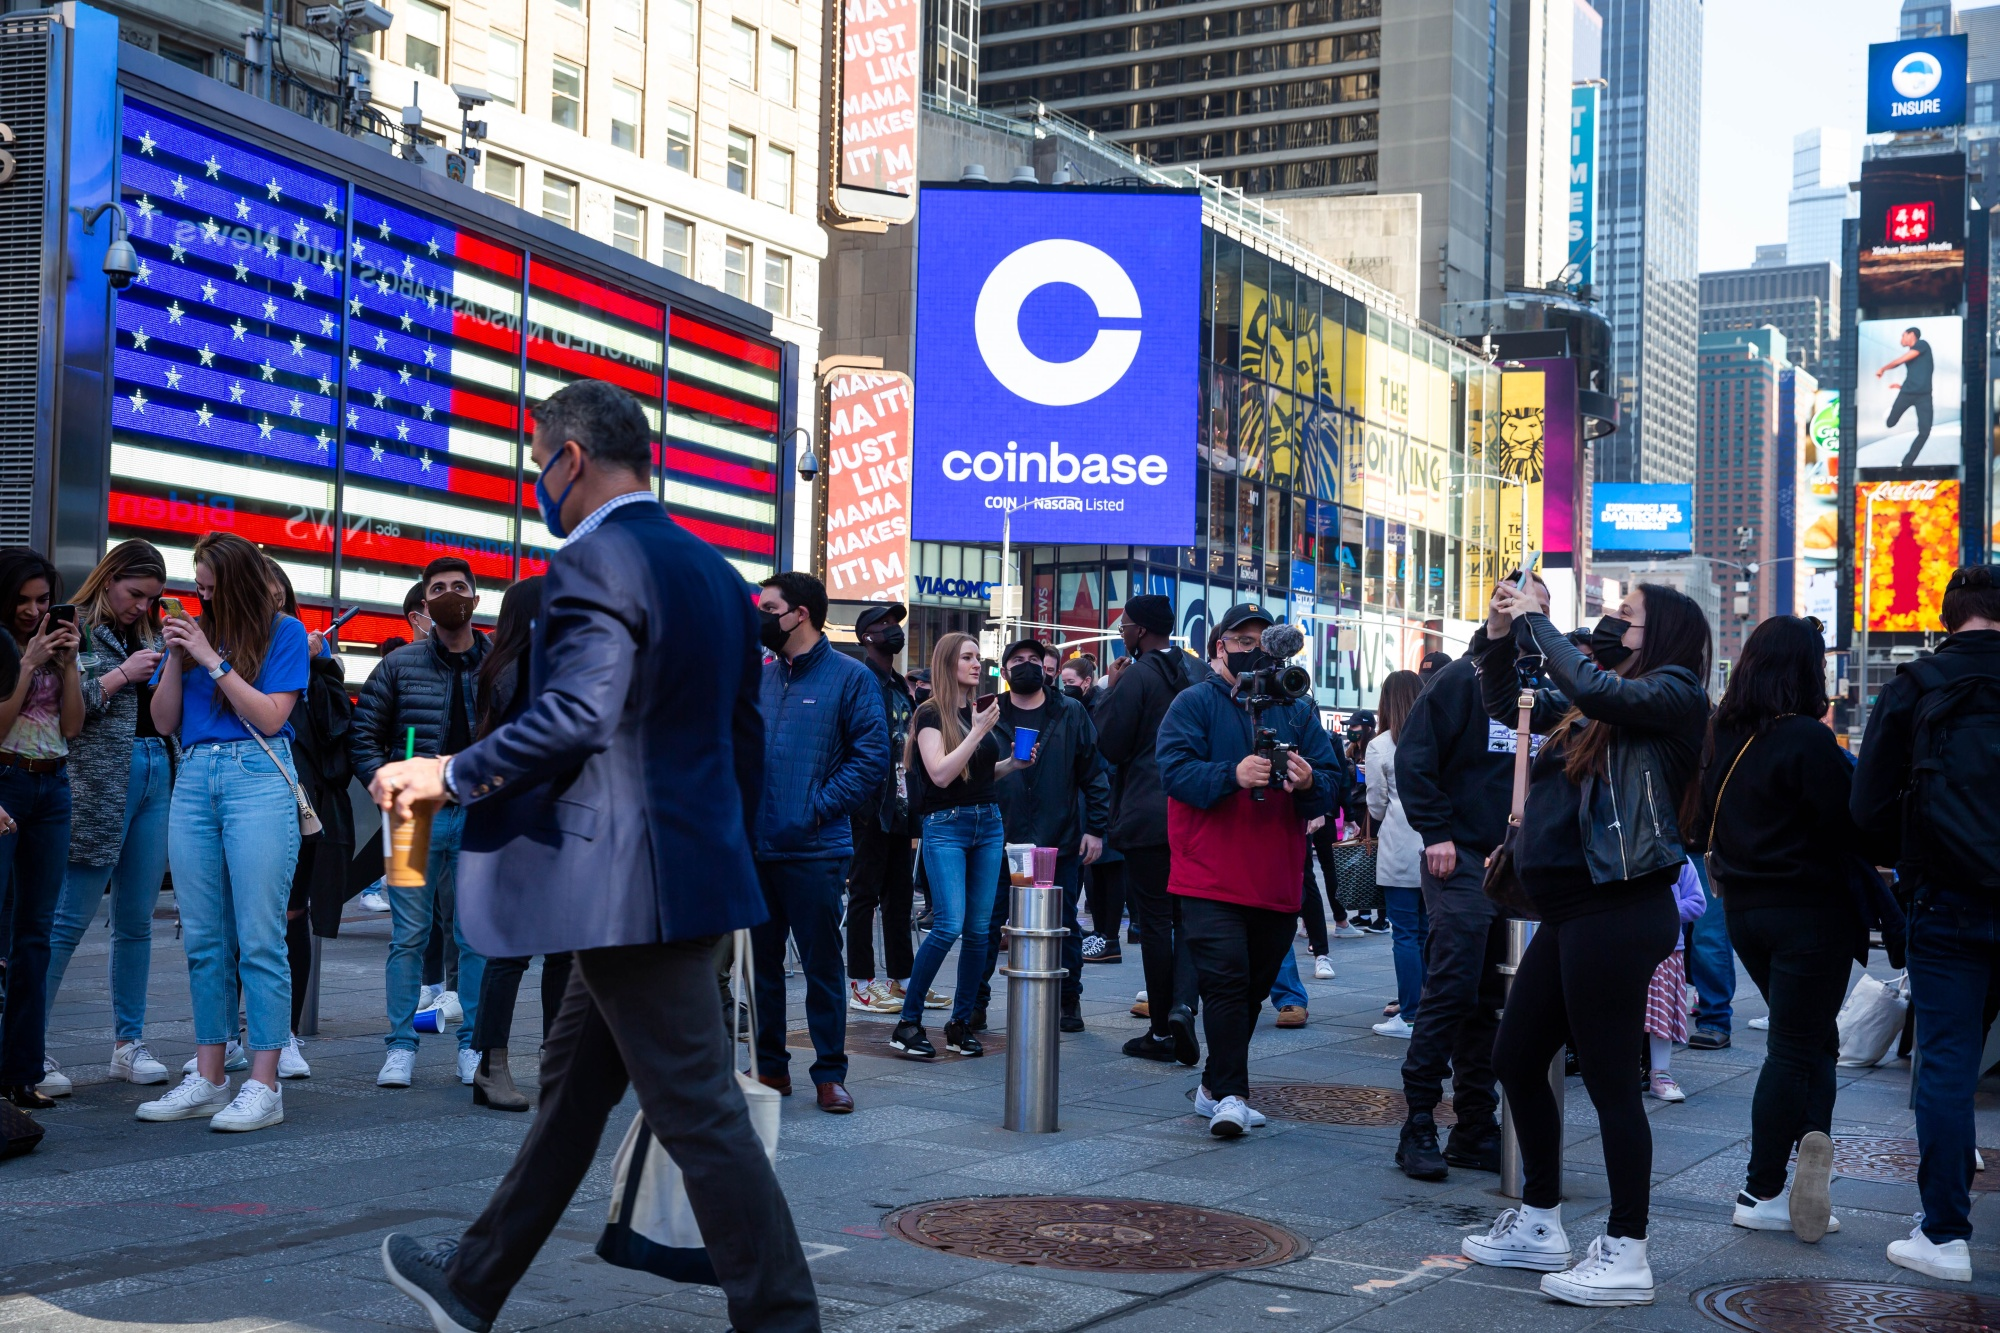 Coinbase during the company's initial public offering (IPO) at the Nasdaq MarketSite in New York, U.S.